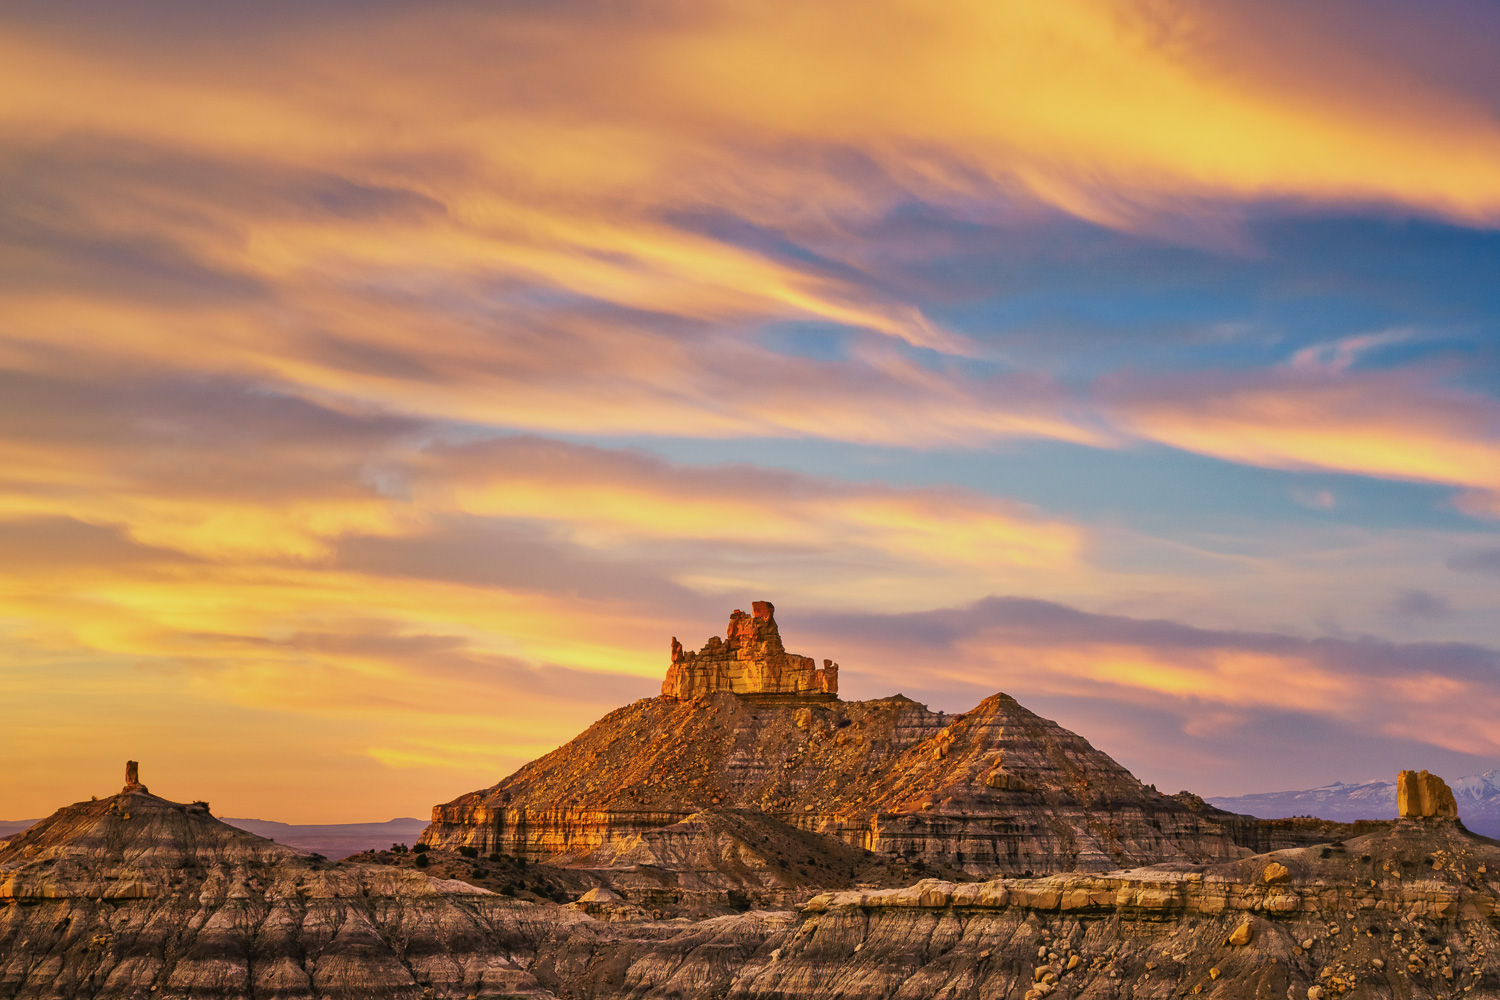 Angel Peak New Mexico by Anne McKinnell - Beginner's Guide to Natural Light in Landscape Photography